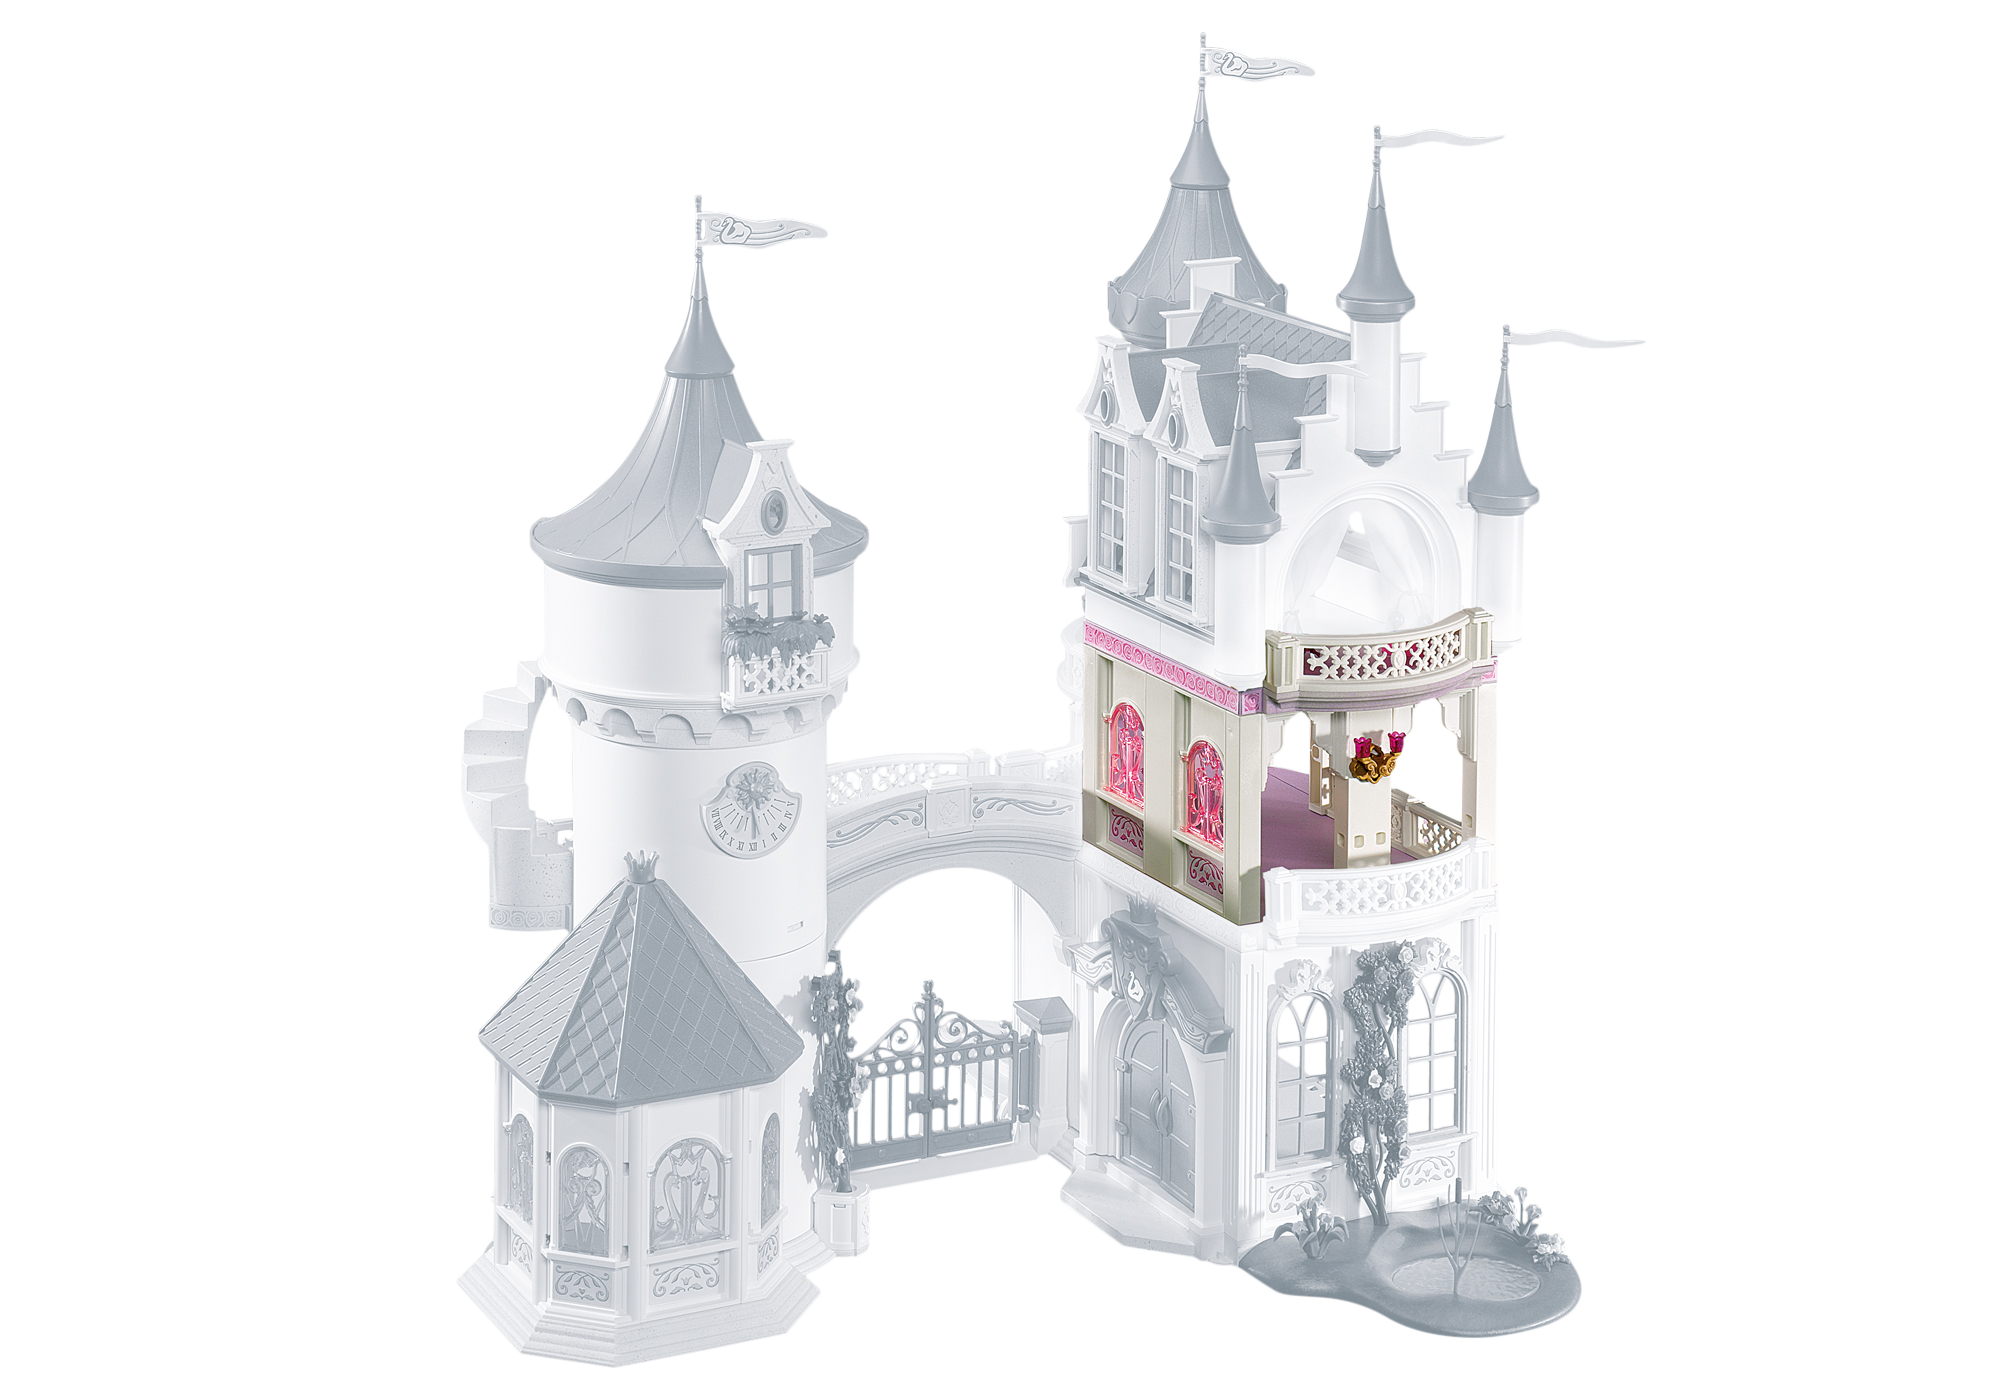 http://media.playmobil.com/i/playmobil/6236_product_detail/Extension for Princess Fantasy Castle (5142)